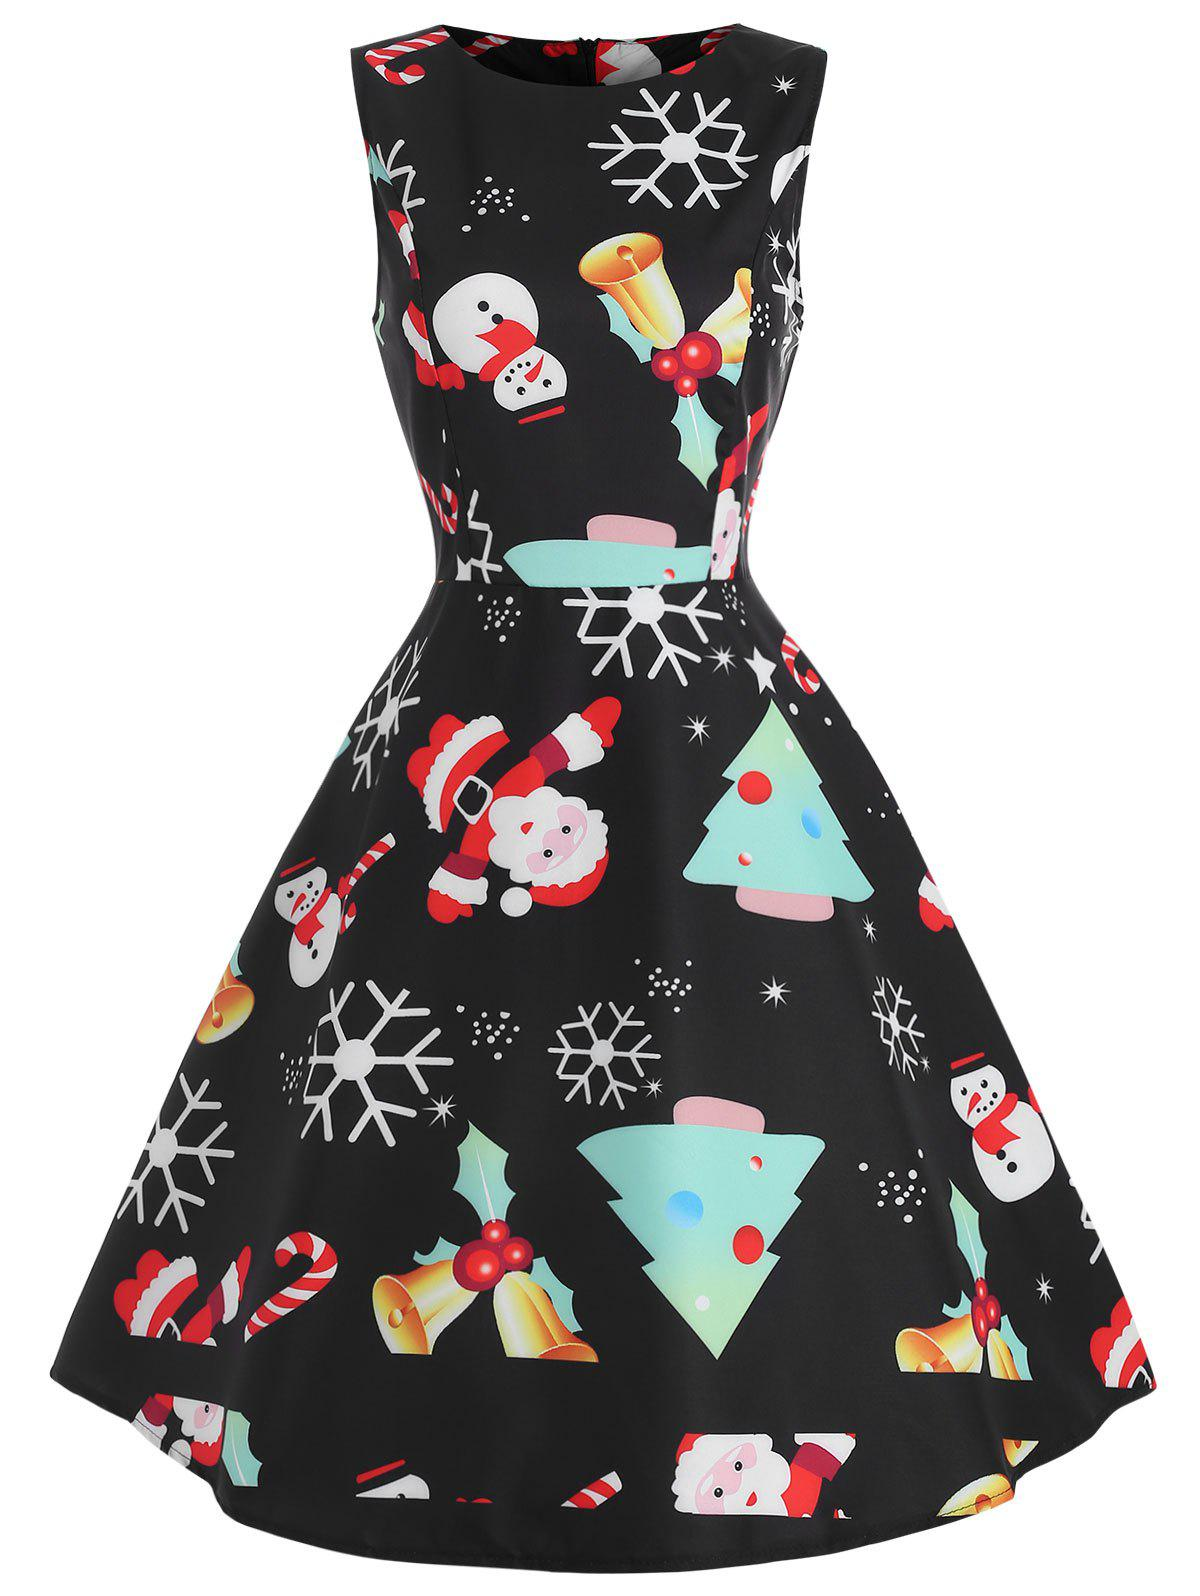 Vintage Christmas Graphic Sleeveless Dress - multicolor M